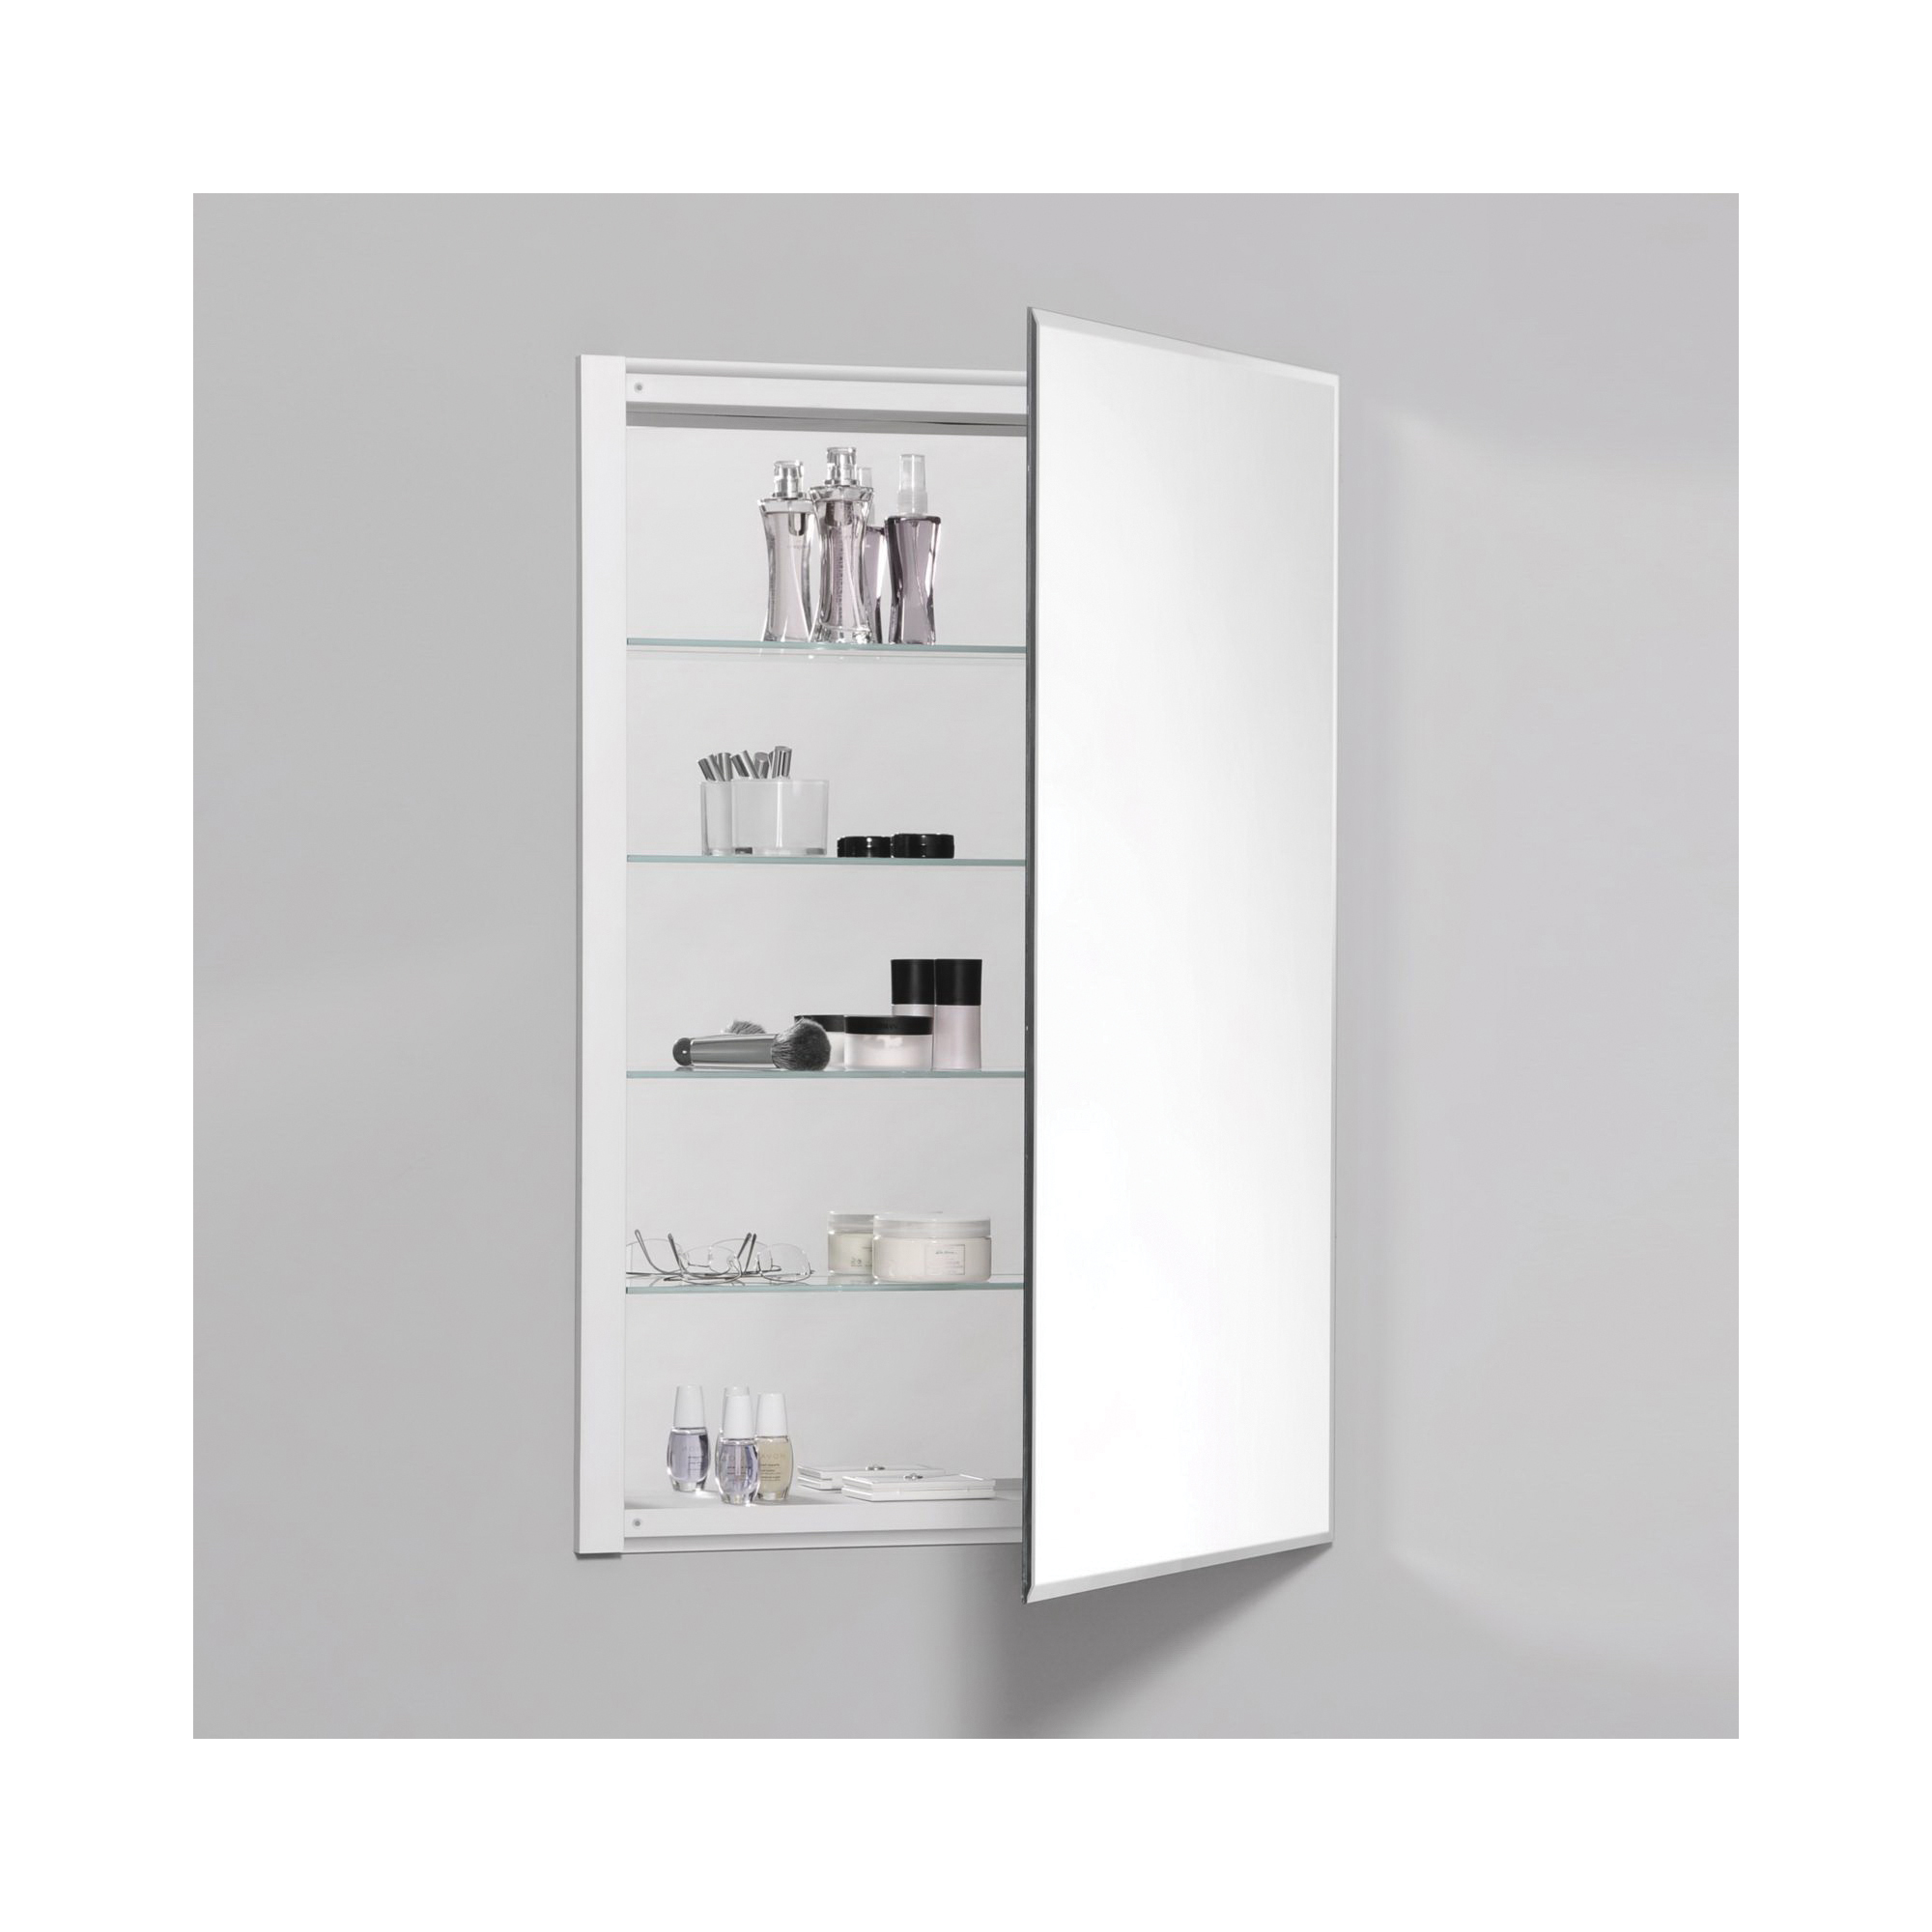 Robern® RC2436D4FB1 Single Door Medicine Cabinet With Interior Beveled Edge Front Mirror, R3 Series, 24 in OAW x 36 in OAH, Aluminum, Satin Anodized